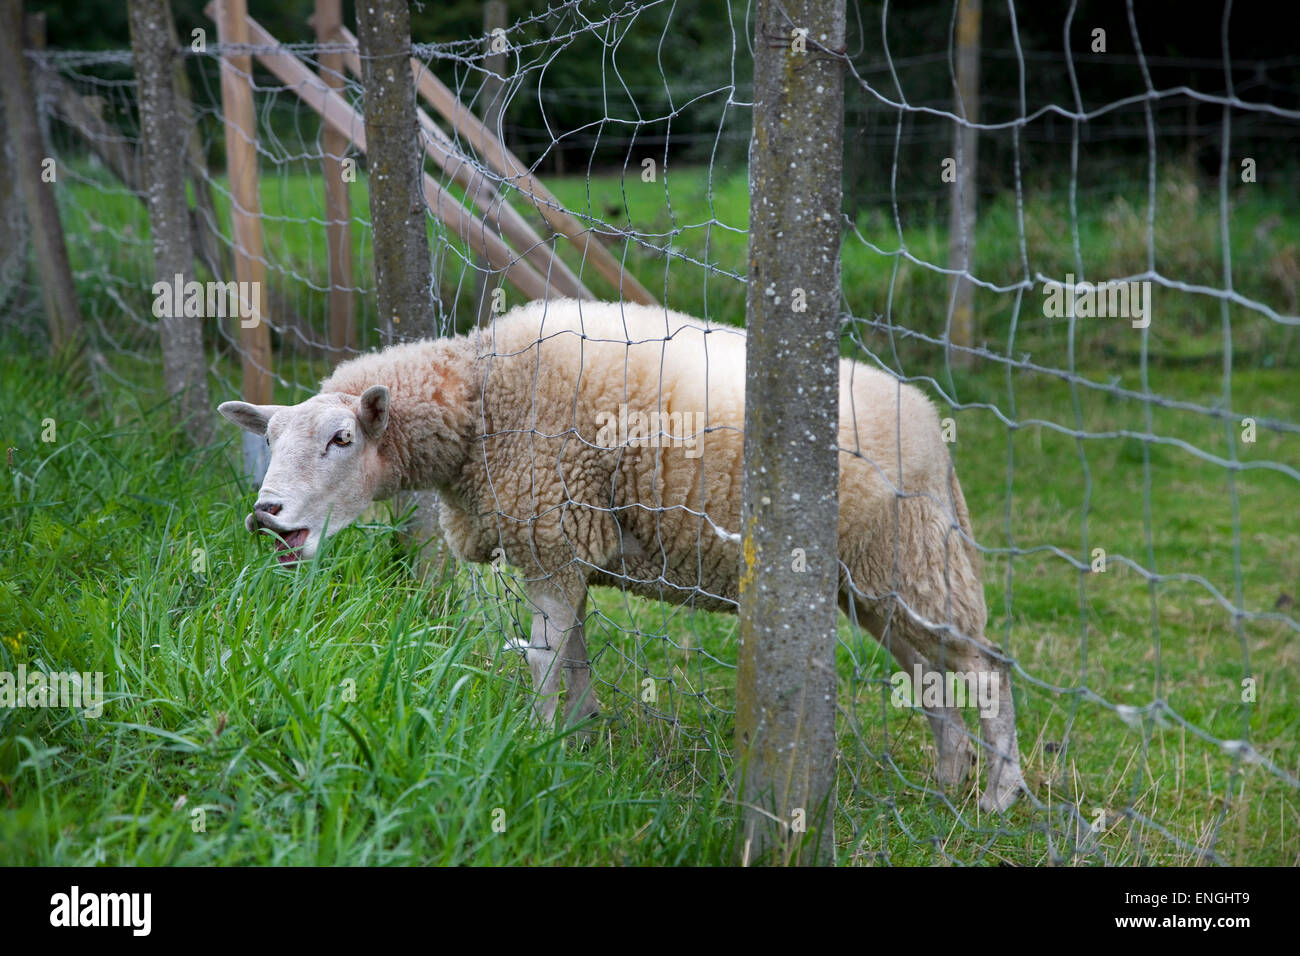 Hungry white domestic sheep sticking head through wire fence to graze on juicy long grass in meadow - Stock Image